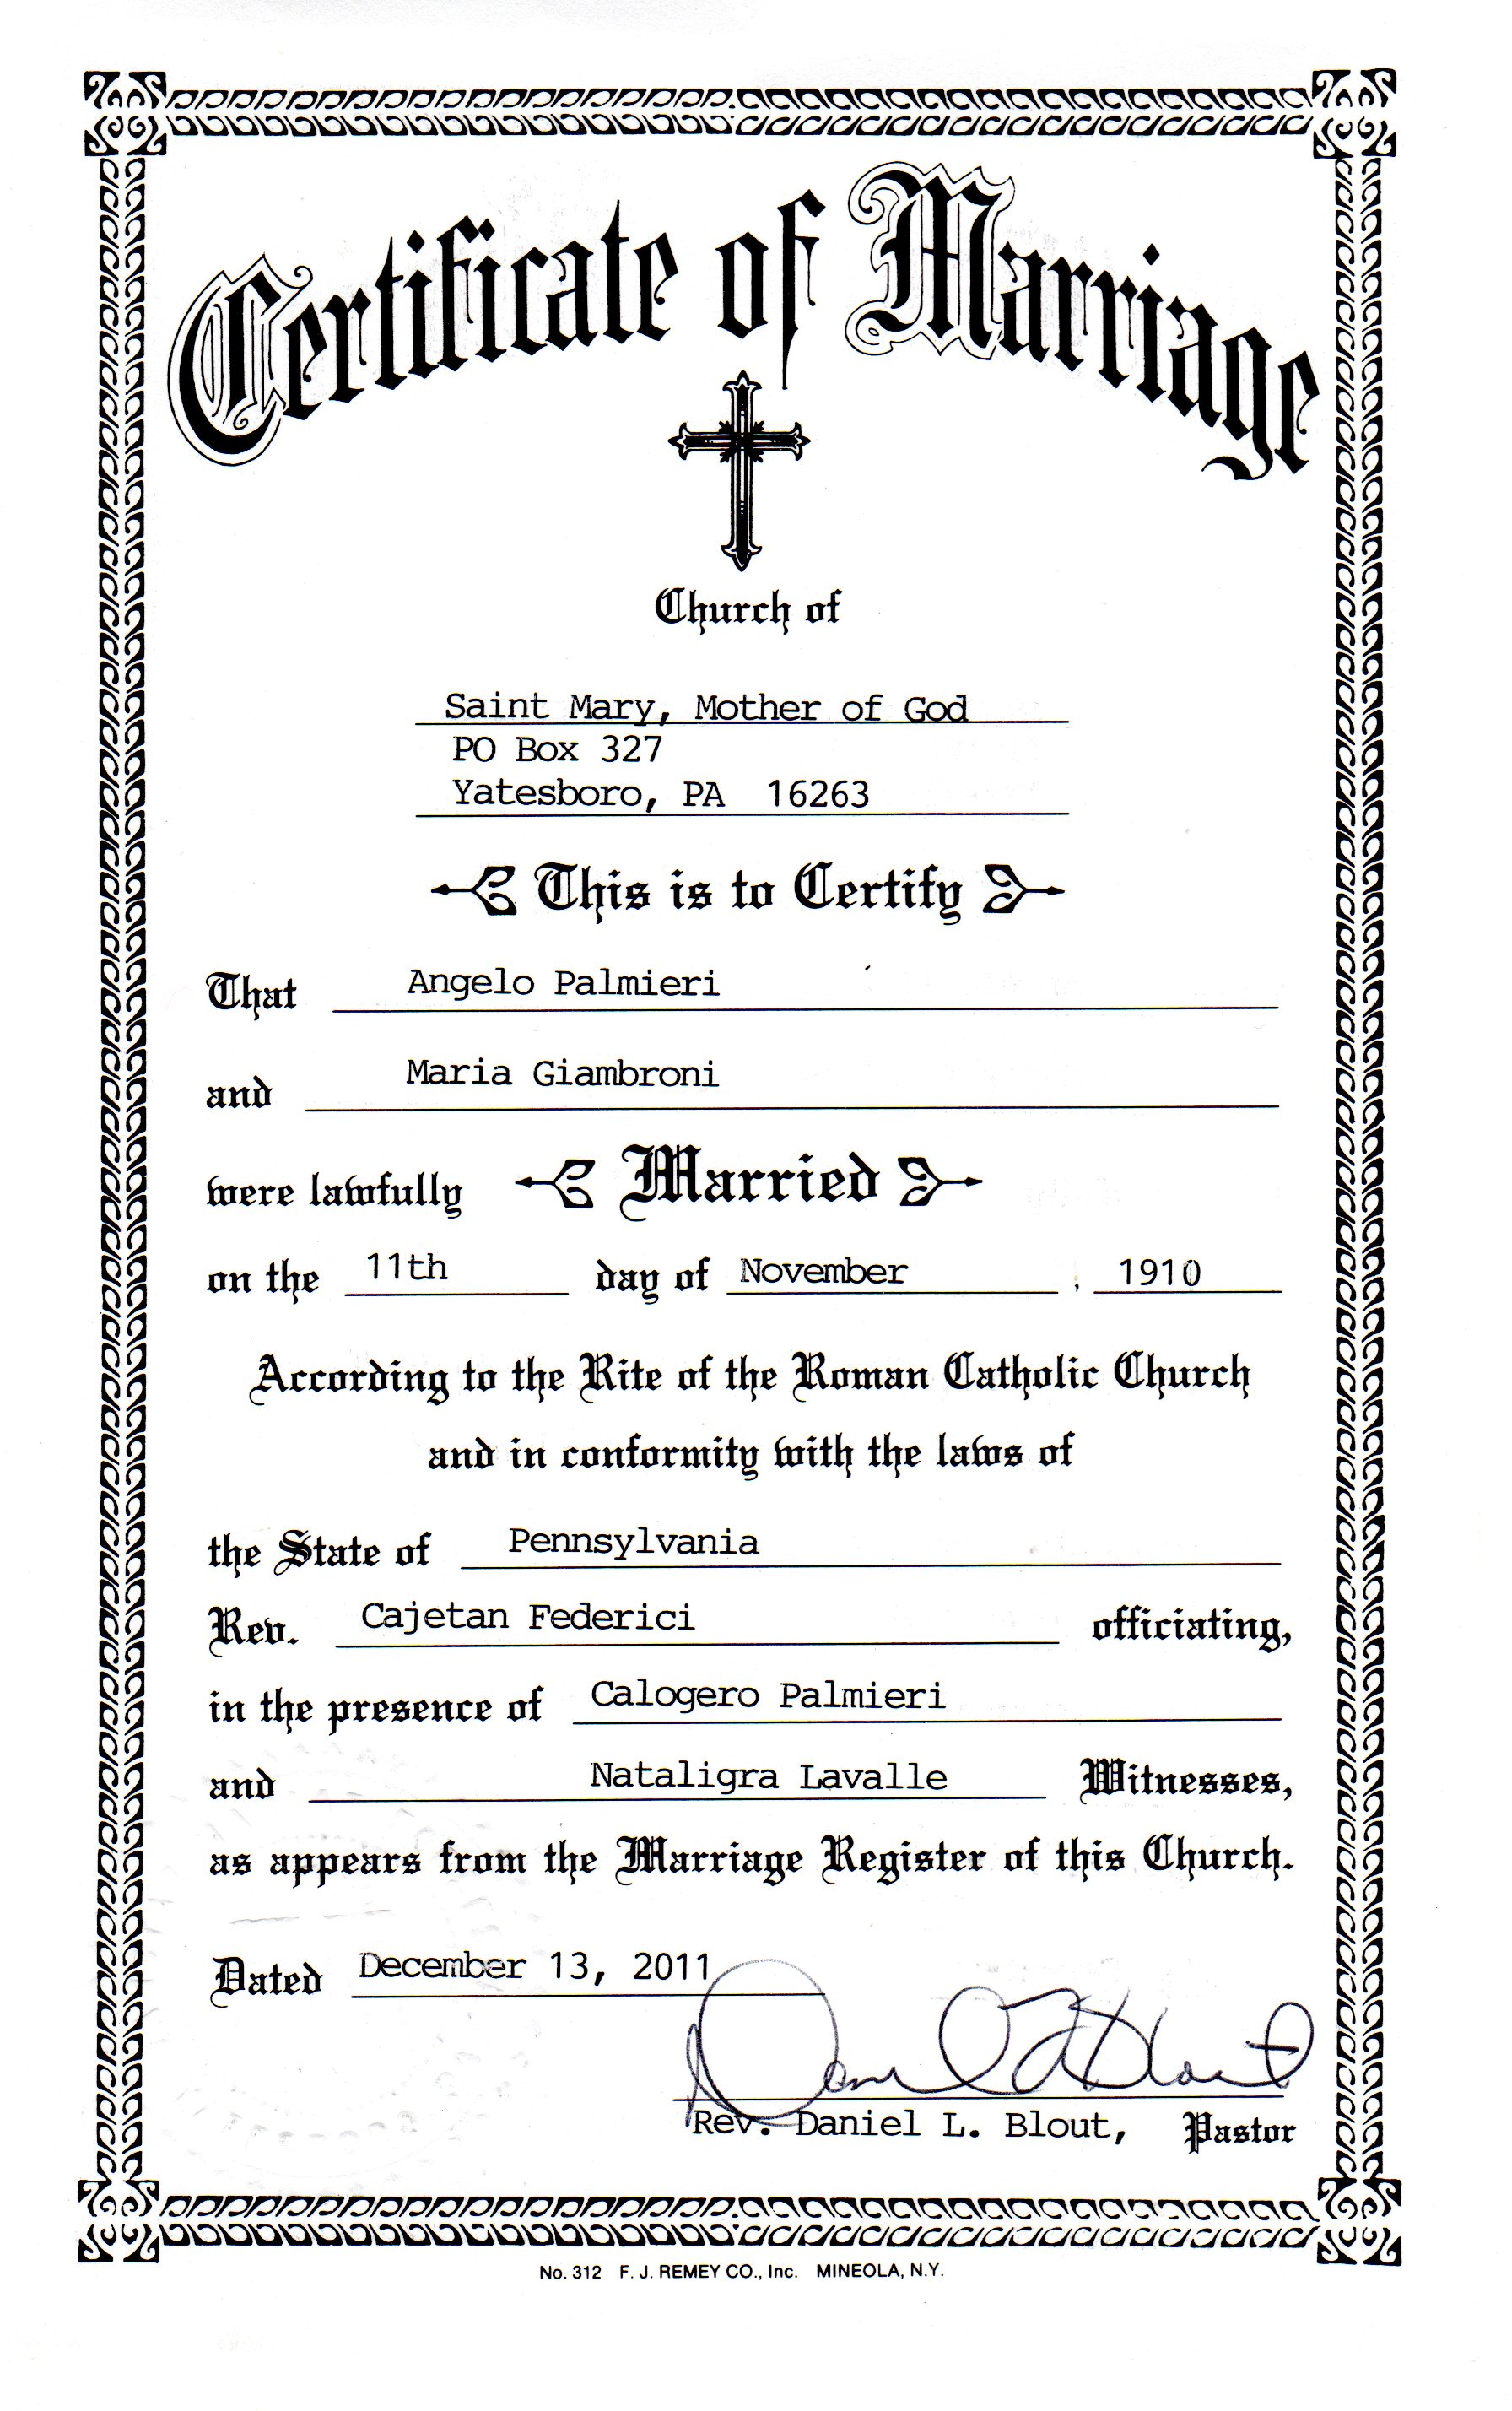 Maria giambrone genealogy and jure sanguinis marriage certificate from saint mary mother of god church 1betcityfo Images